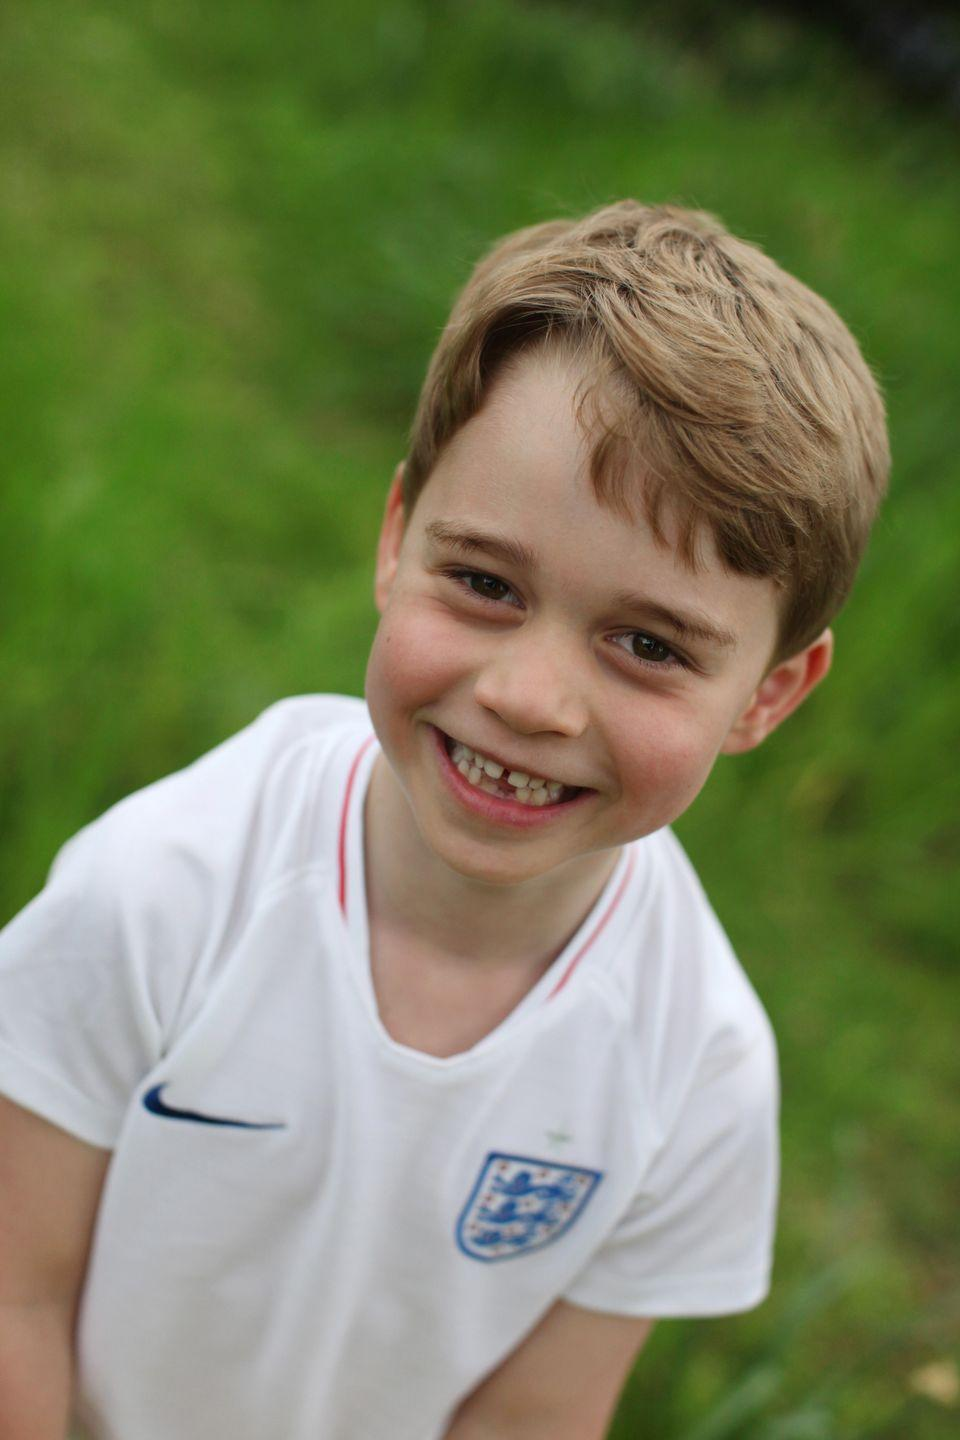 <p>The second picture in the birthday series shows Prince George wearing a soccer jersey.</p>